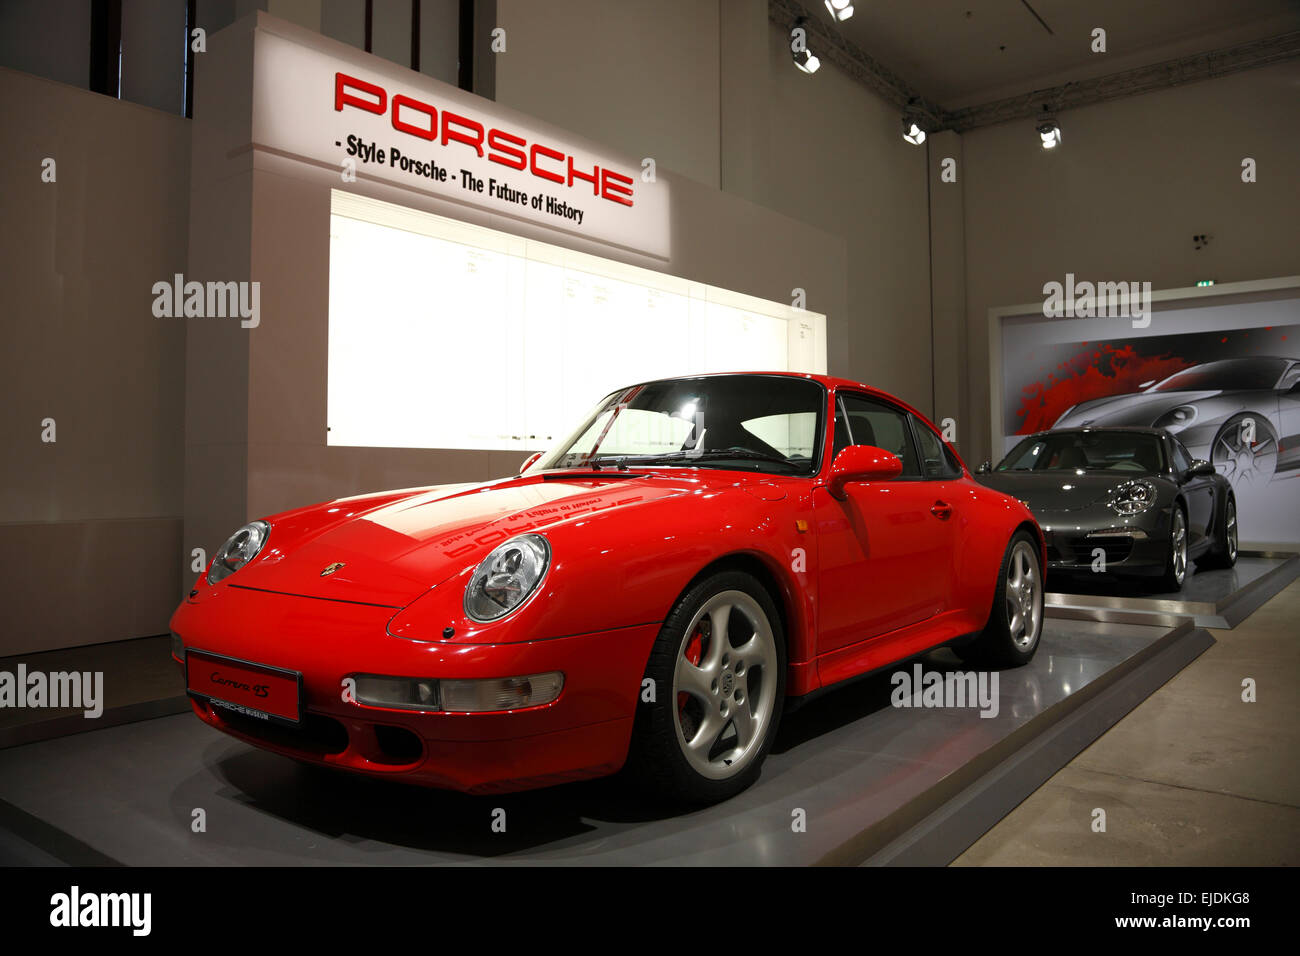 Porsche cars, Red dot design museum, Zeche Zollverein, Essen, Nordrhine Westphalia, Germany, Europe - Stock Image